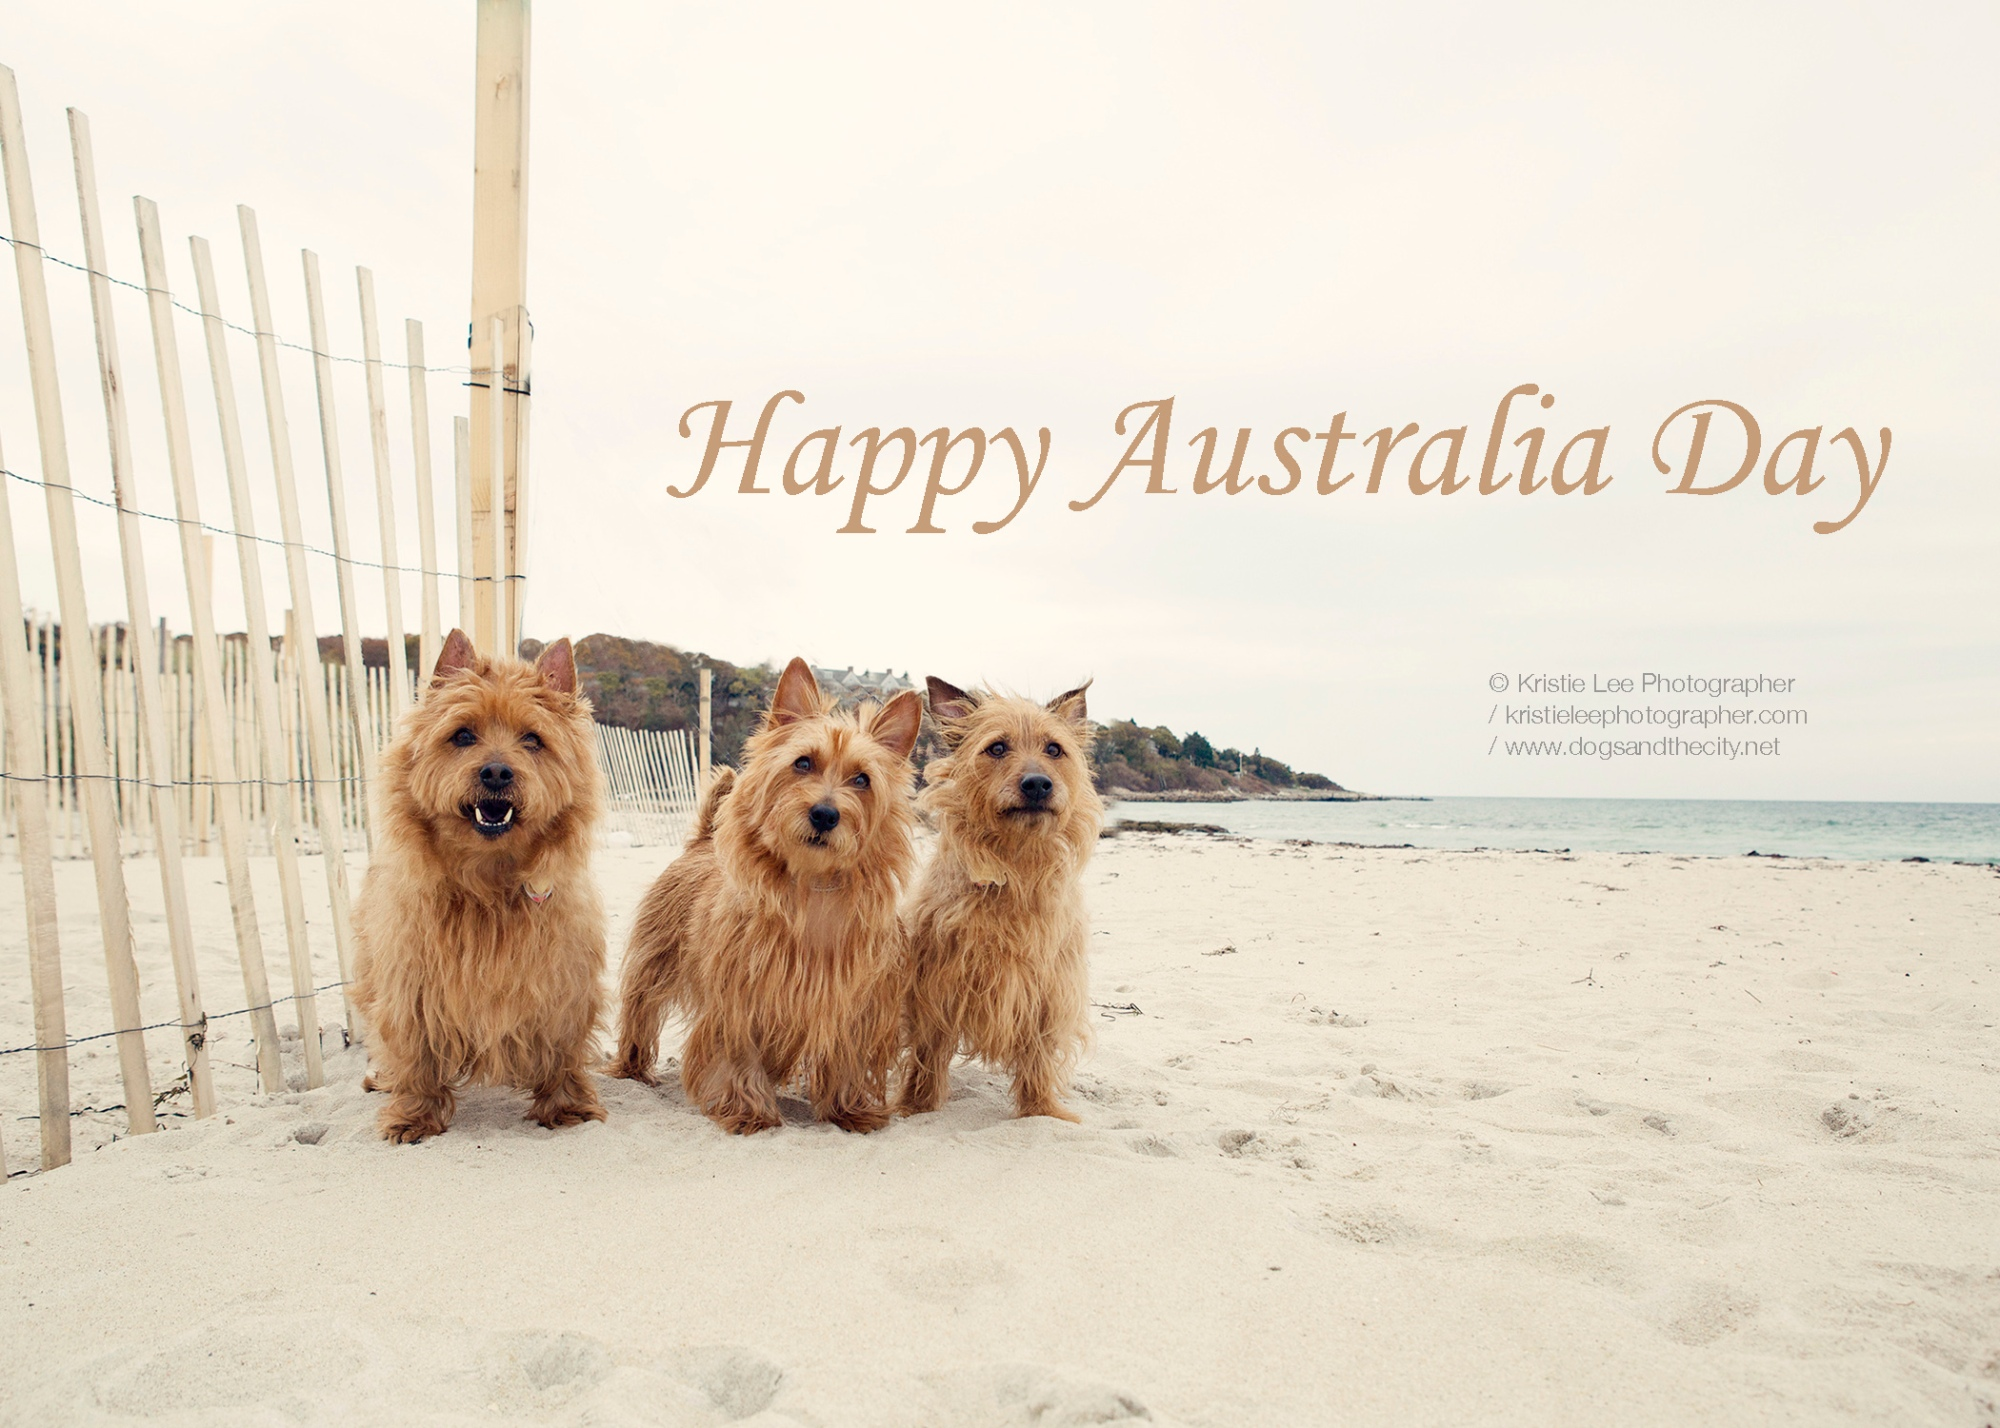 Happy Australia Day Kristieleephotgrapher